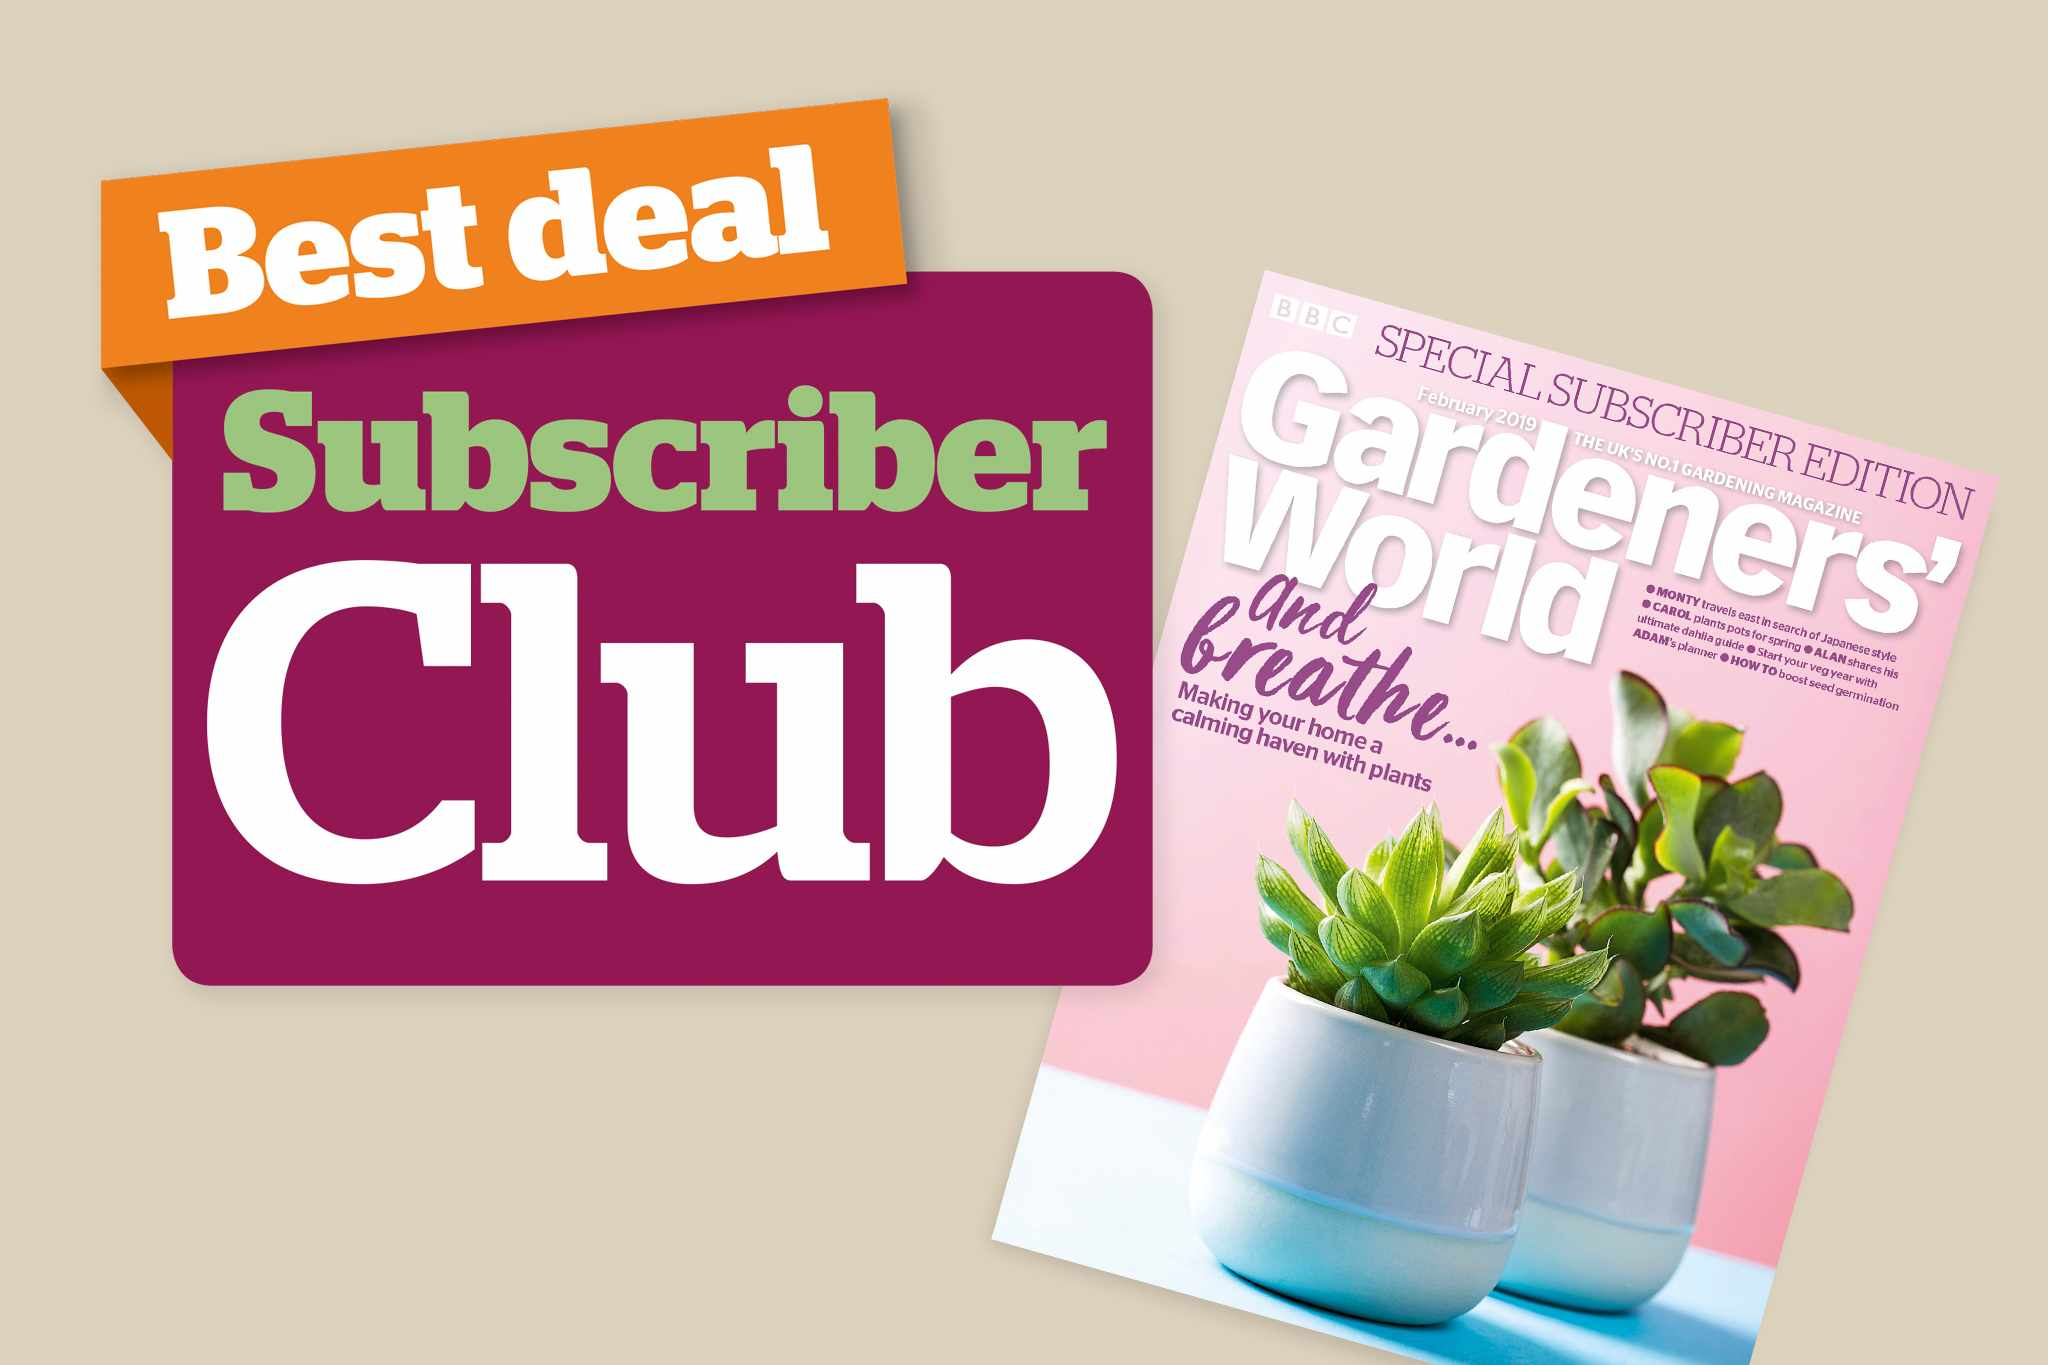 2048x1365-offers-subs-club-discount-Feb-issue-2019